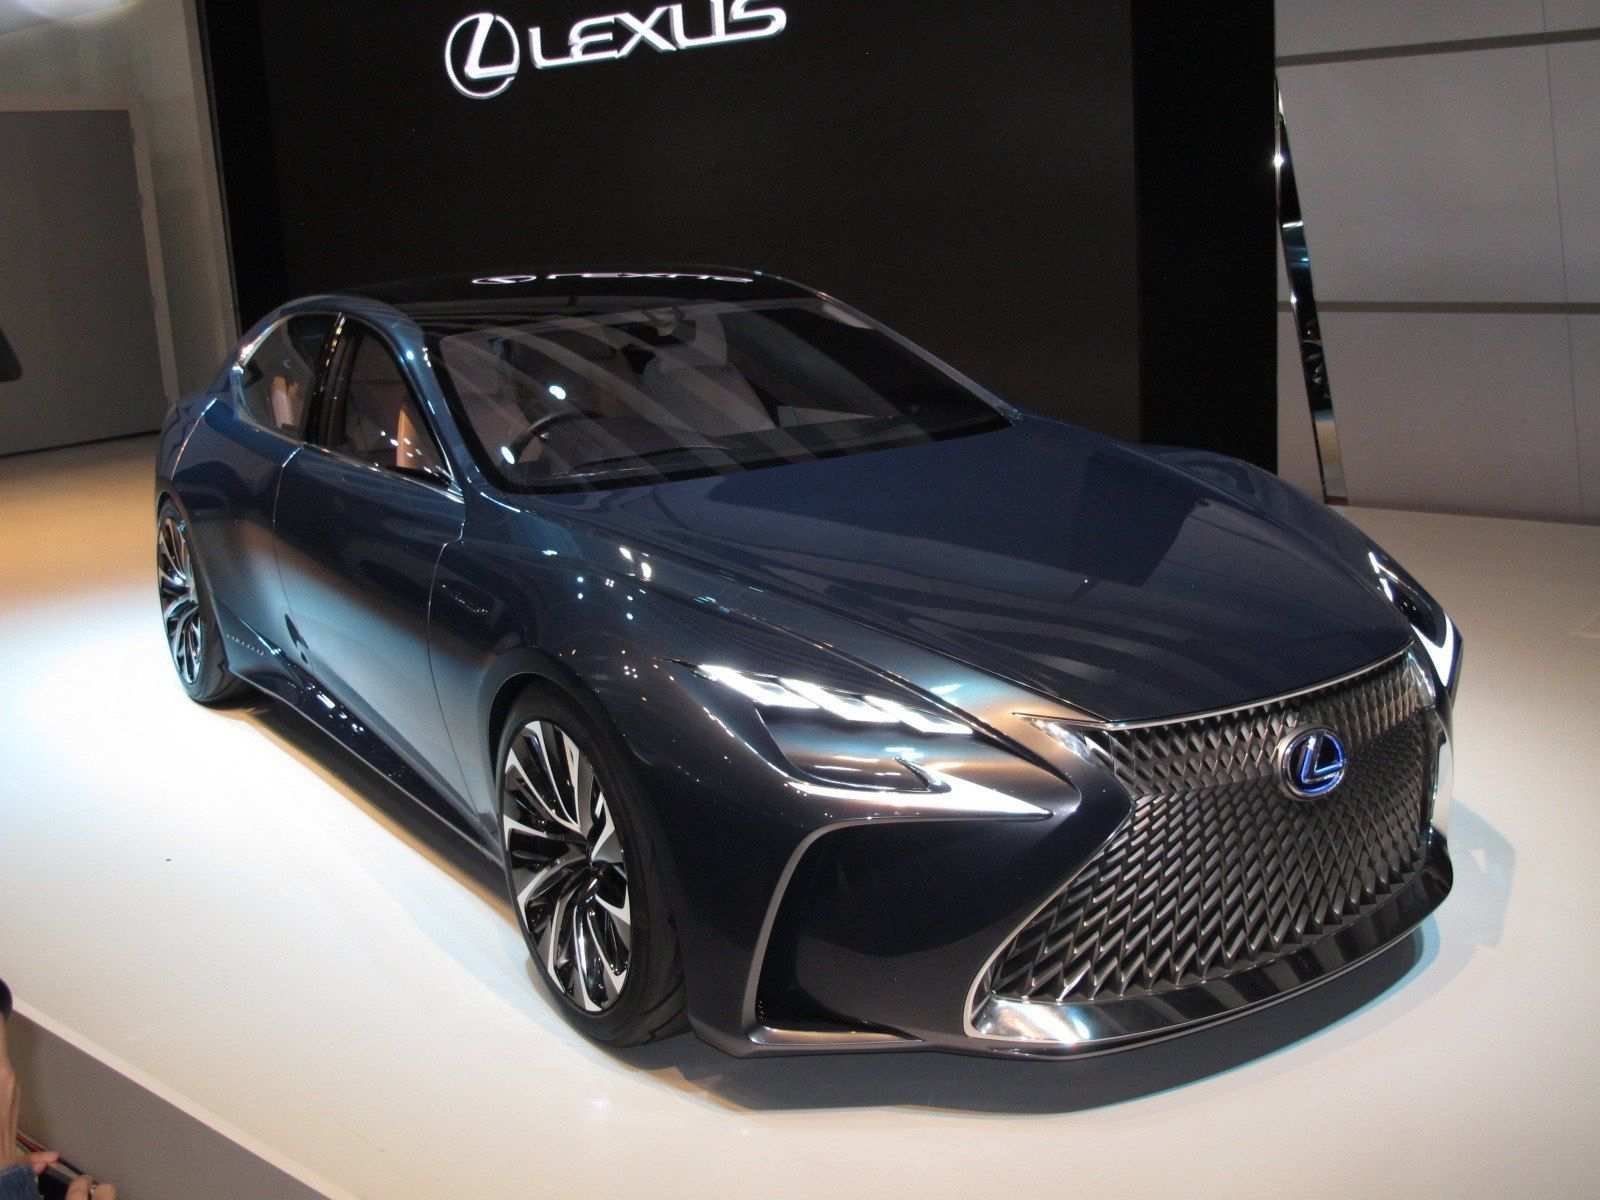 61 Gallery of 2020 Lexus Isf Price by 2020 Lexus Isf